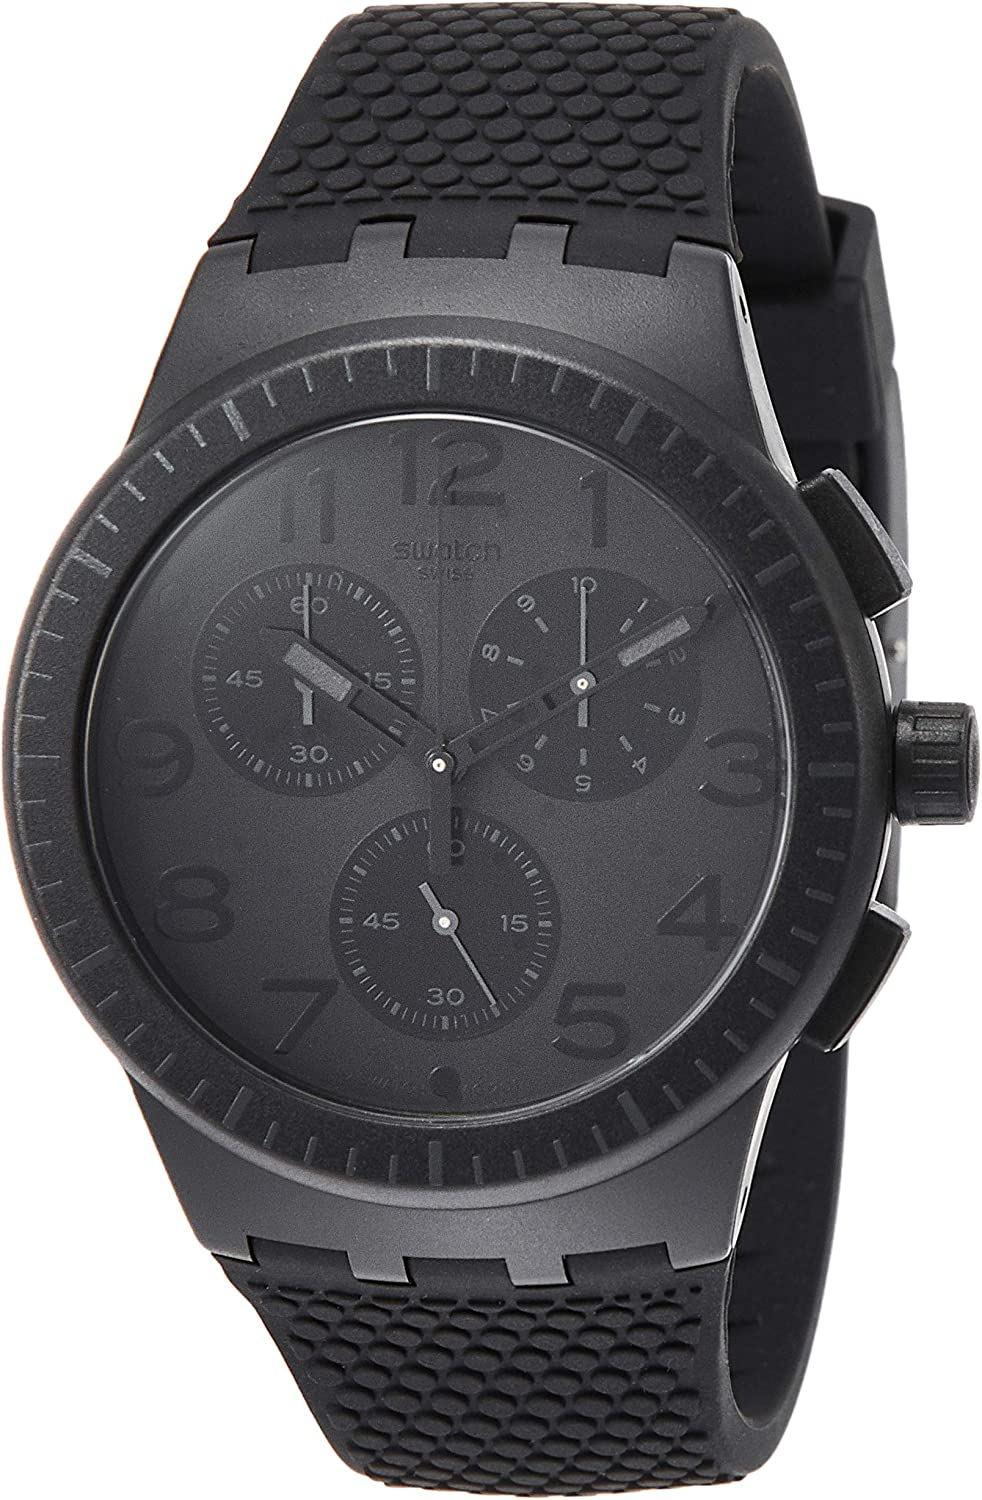 Swatch Men's Chronograph Quartz Watch with Silicone Strap SUSB104 812dUY--OcLUL1500_